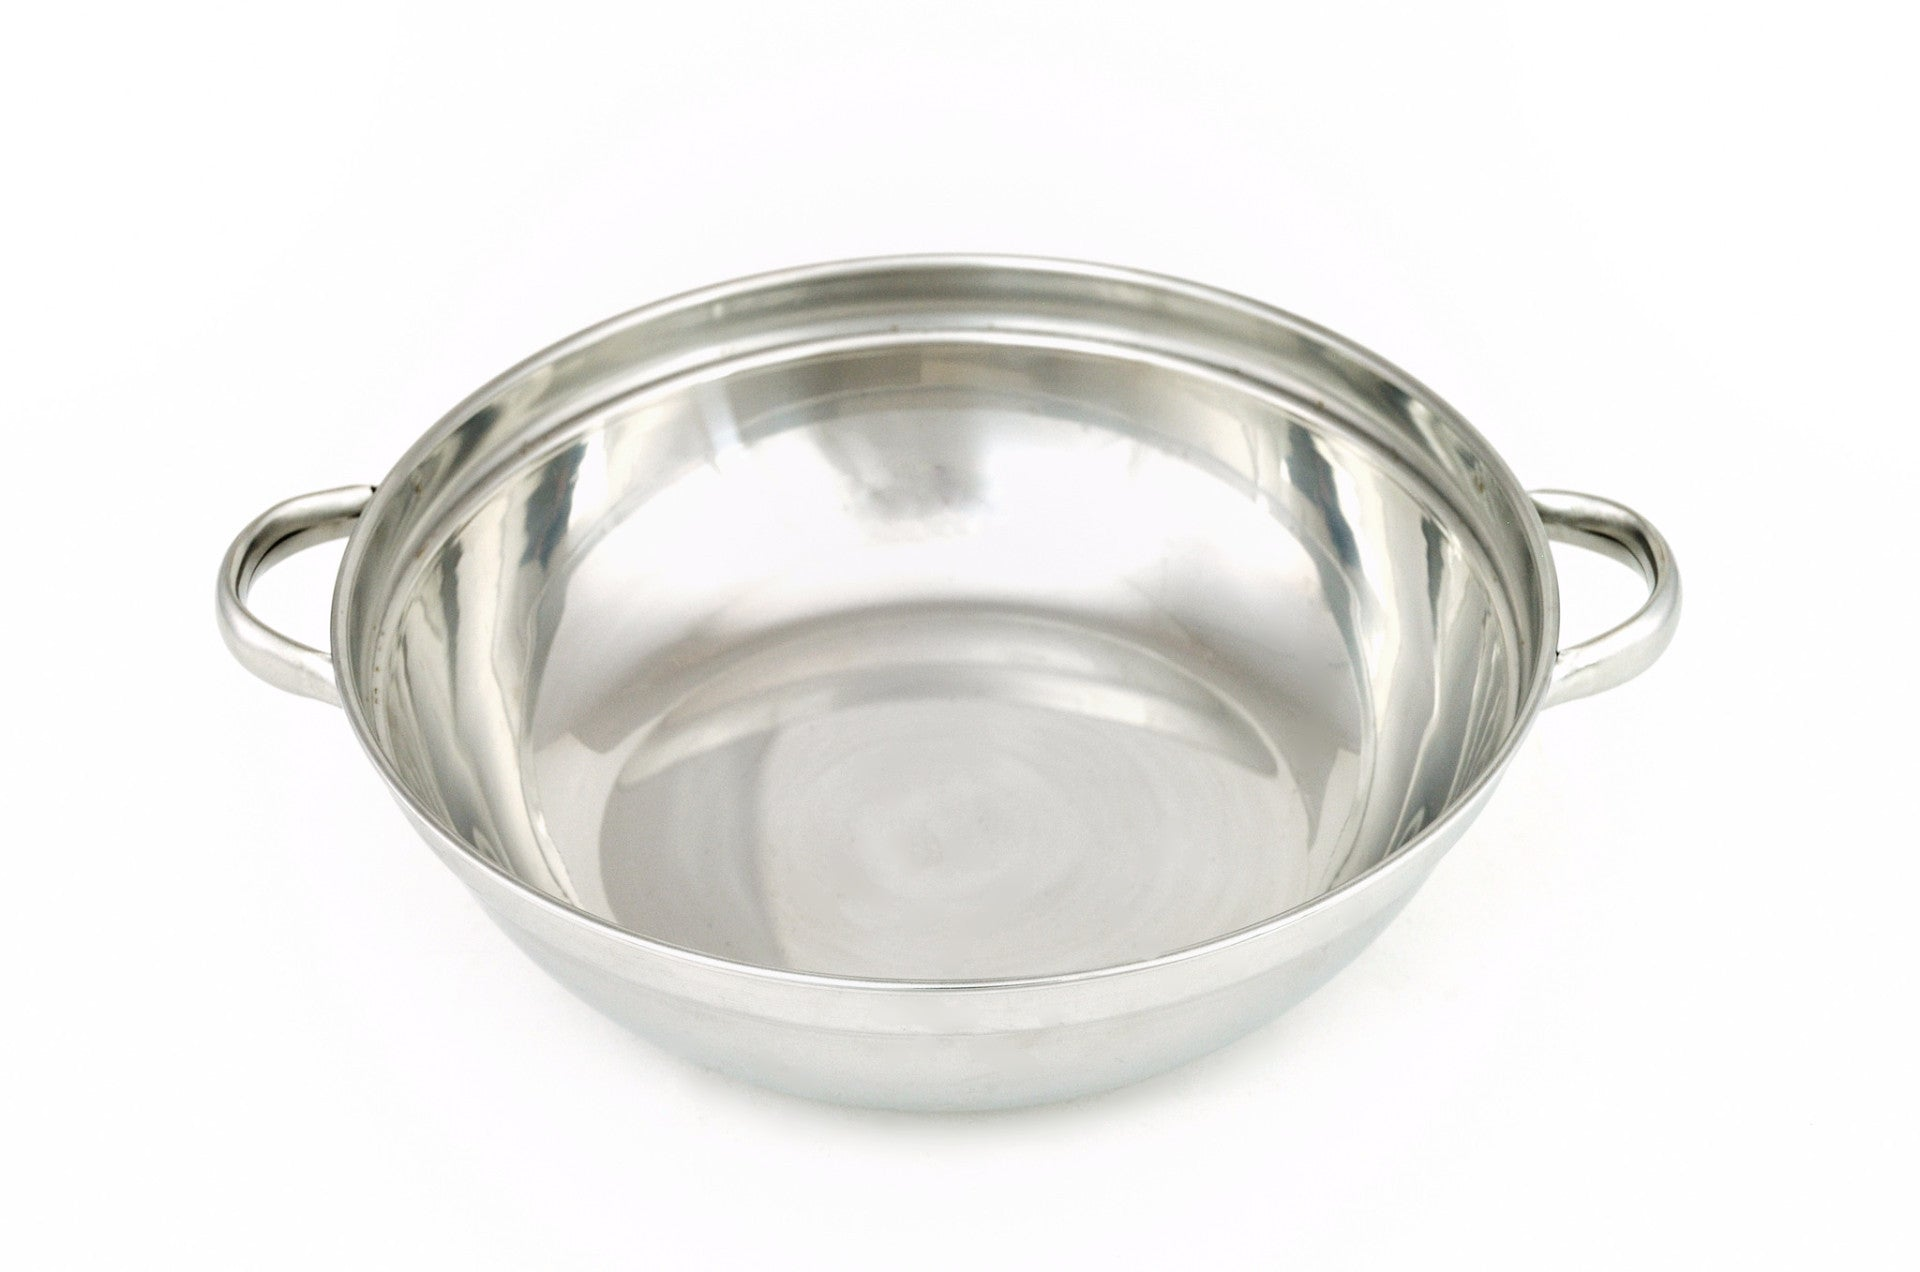 Stainless Steel Stew Pot, Stainless Steel - eKitchenary